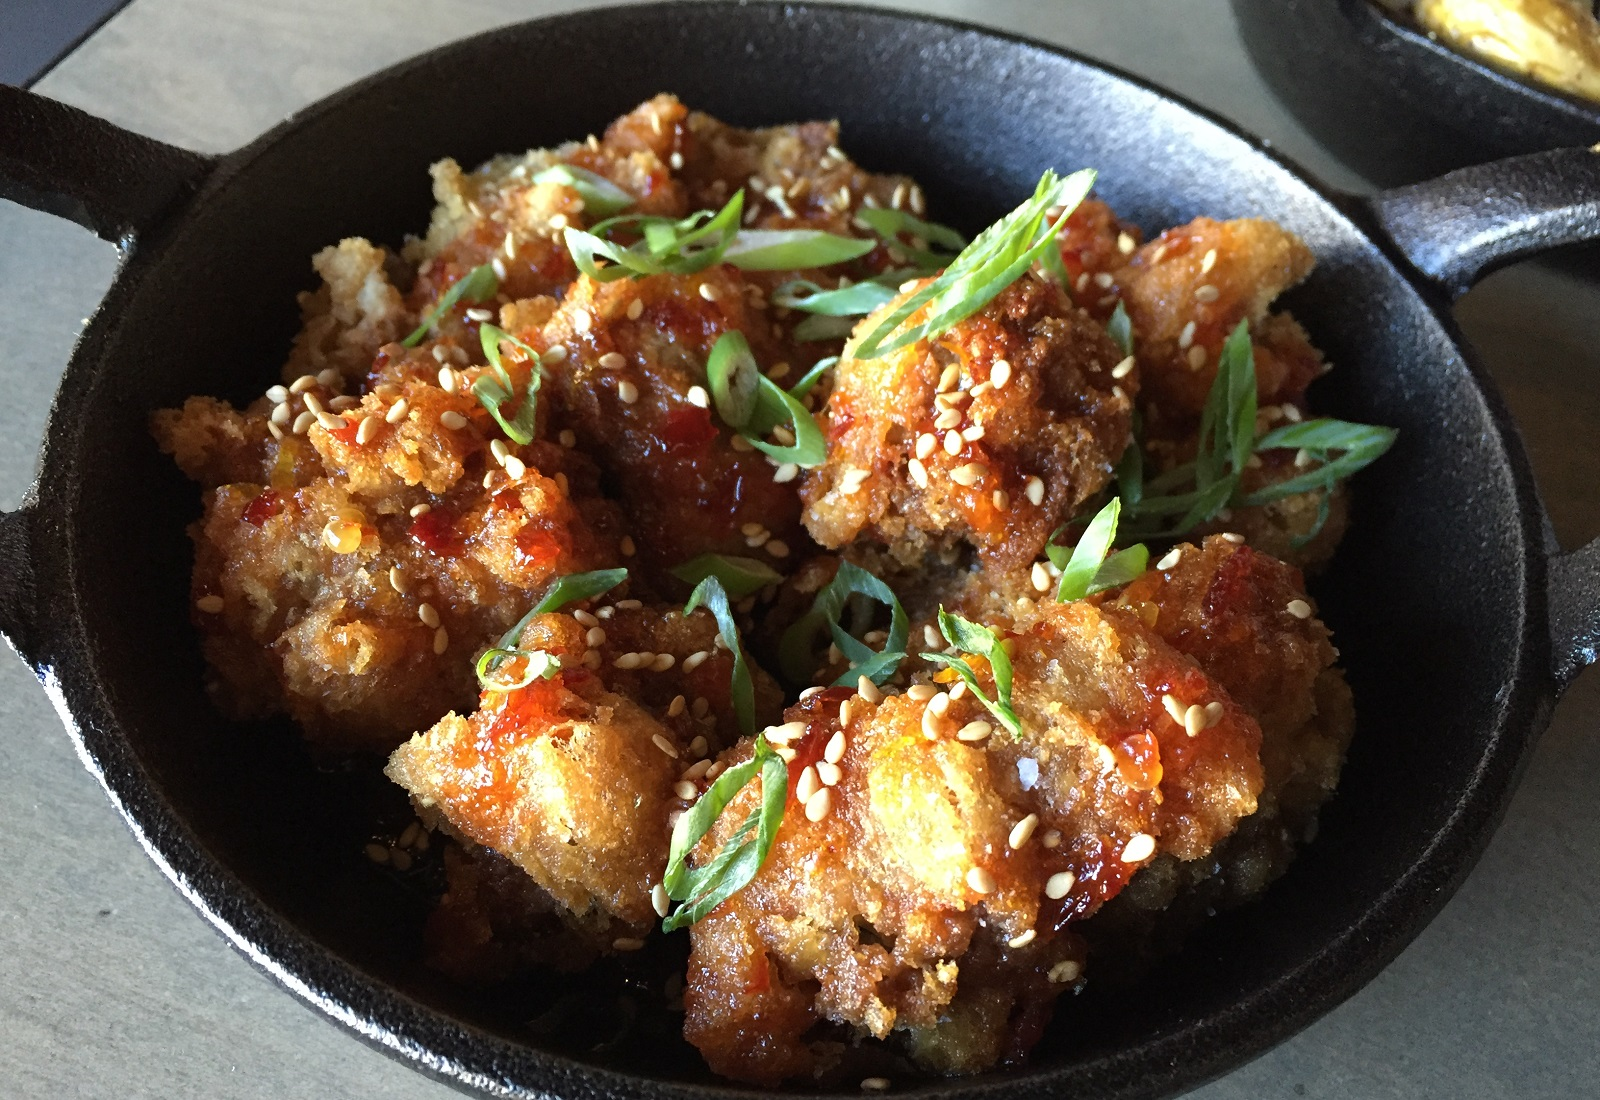 Delicately fried chicken livers in an orange-sambal sauce evoked memories of Chinese takeout. (Caitlin Hartney/Special to The News)